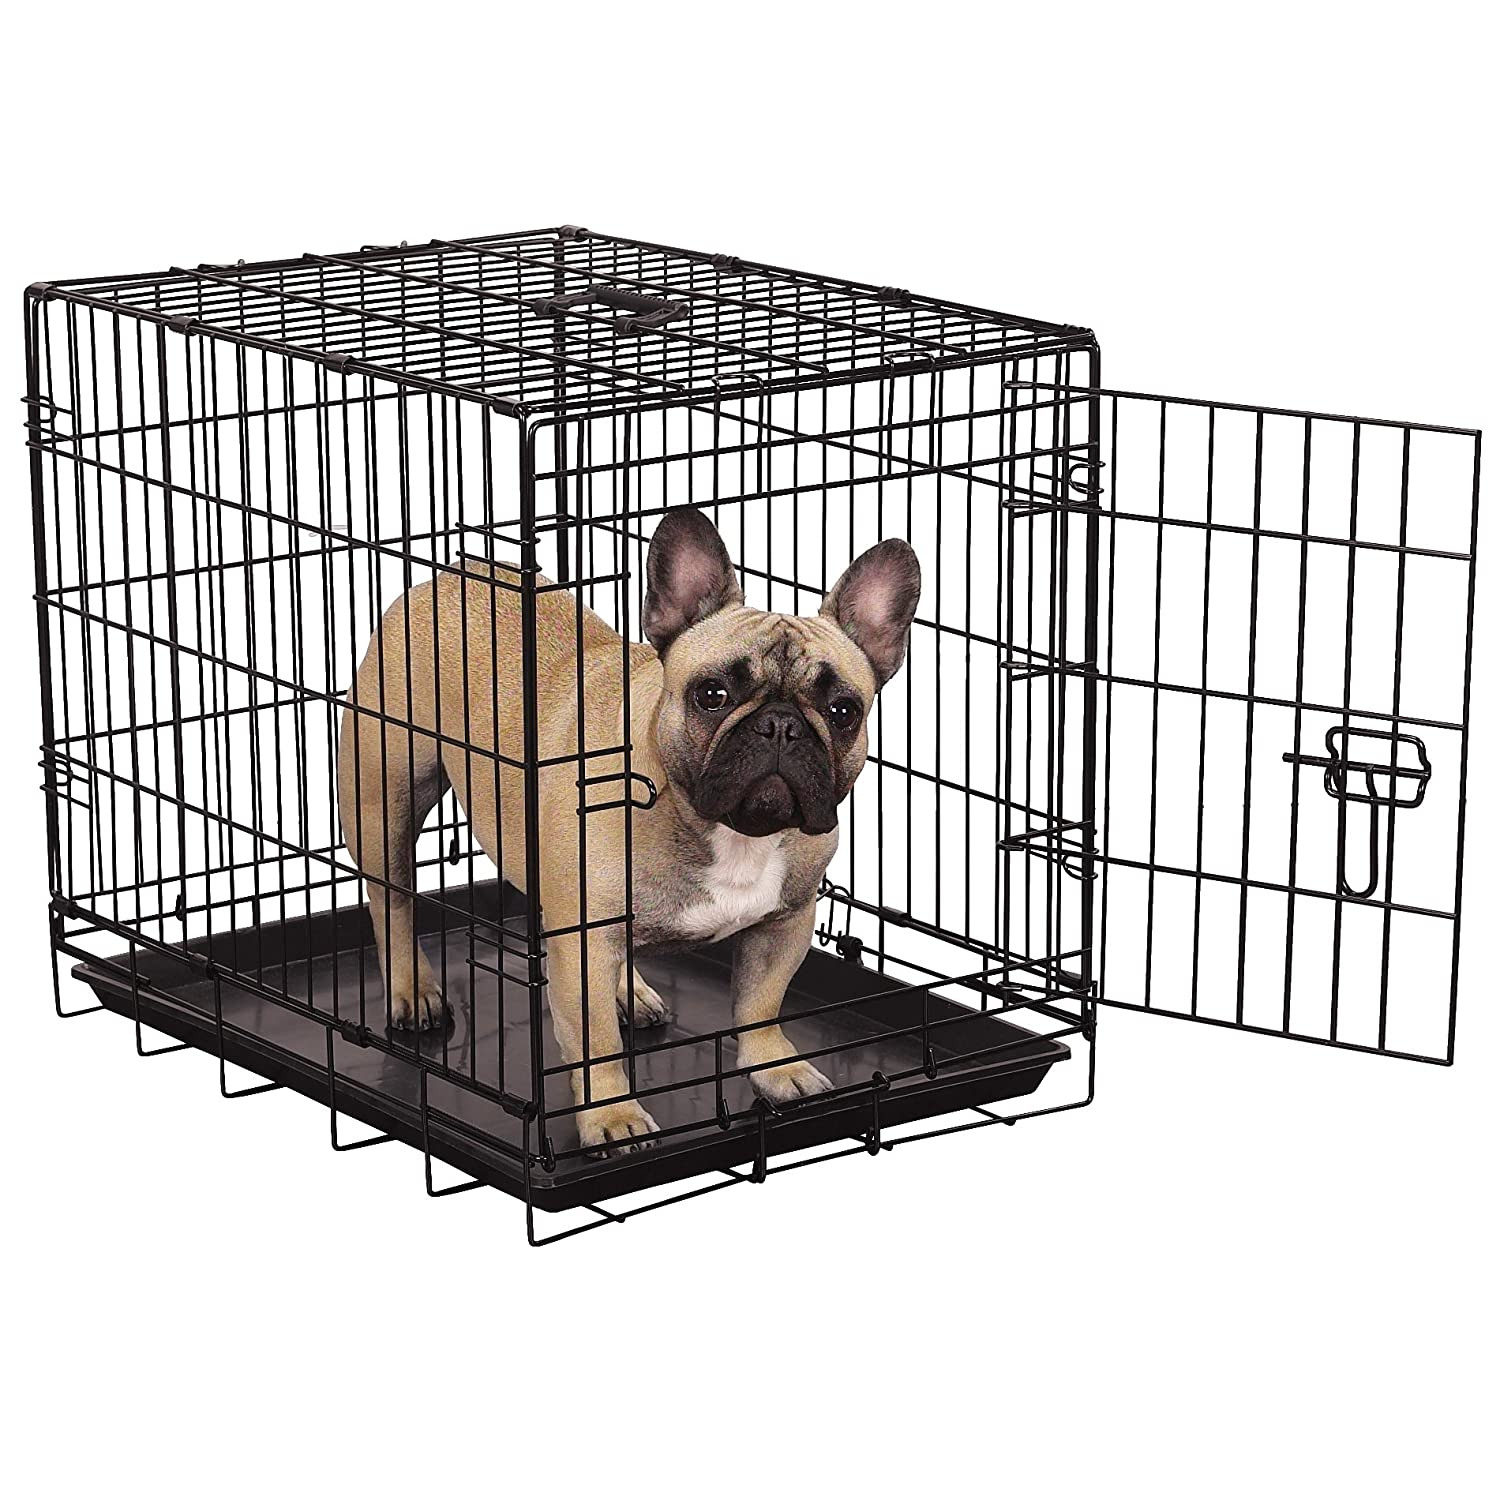 amazoncom crate appeal crates for dogs strong durable and  - amazoncom crate appeal crates for dogs strong durable and versatilefoldable and portable constructed of easyclean epoxycoated steel  extralarge